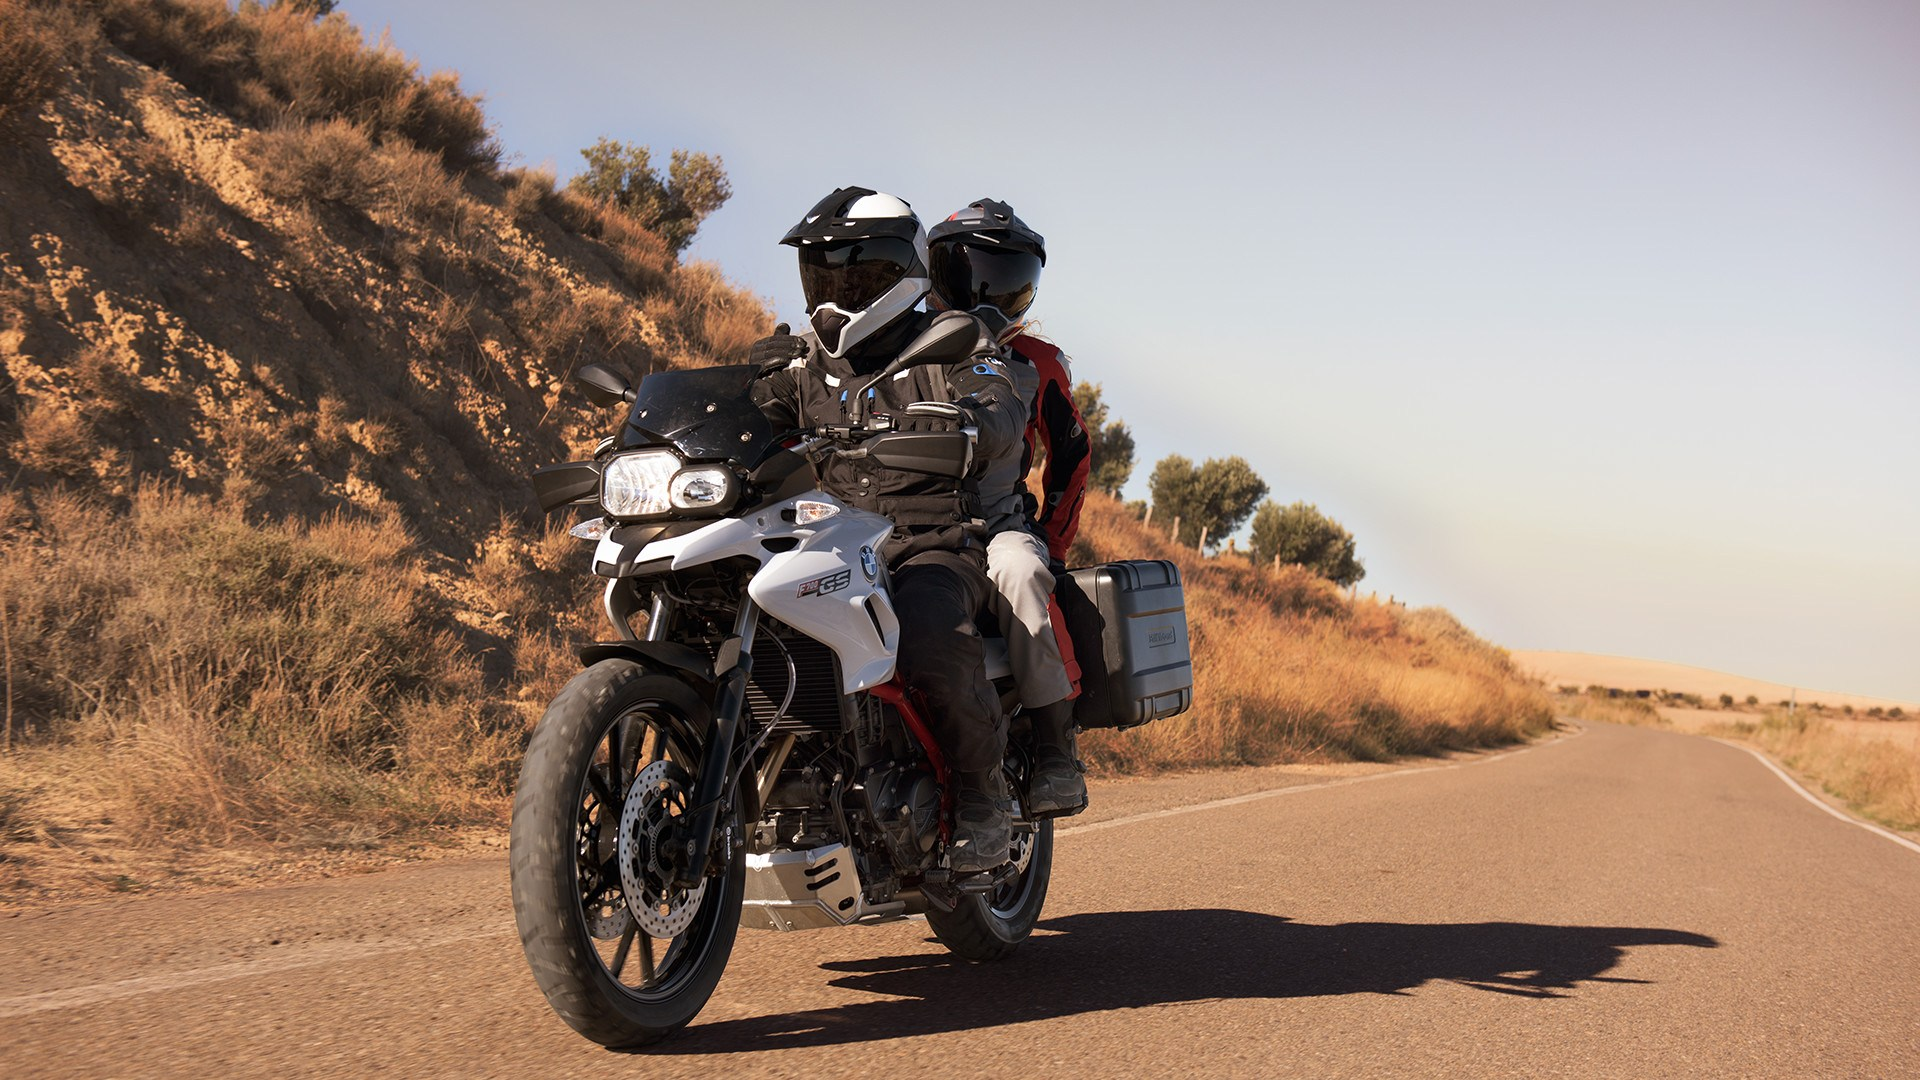 2017 BMW F 700 GS in Orange, California